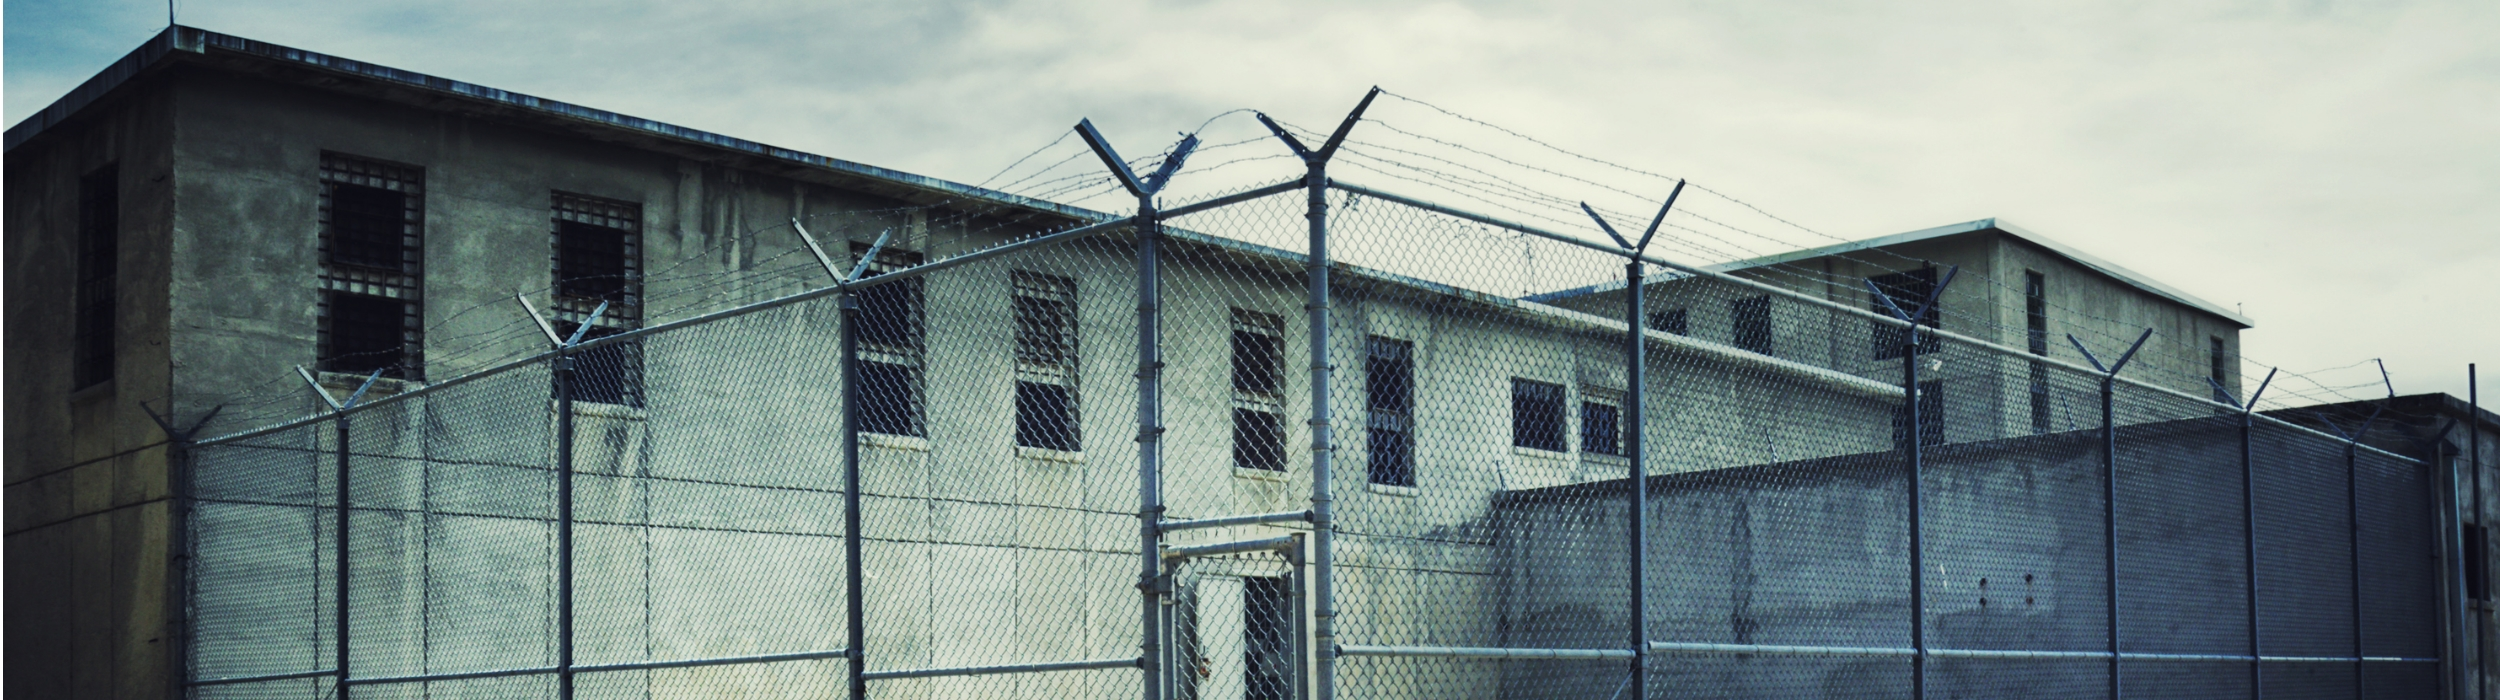 Opgal Prison Surveillance Solutions